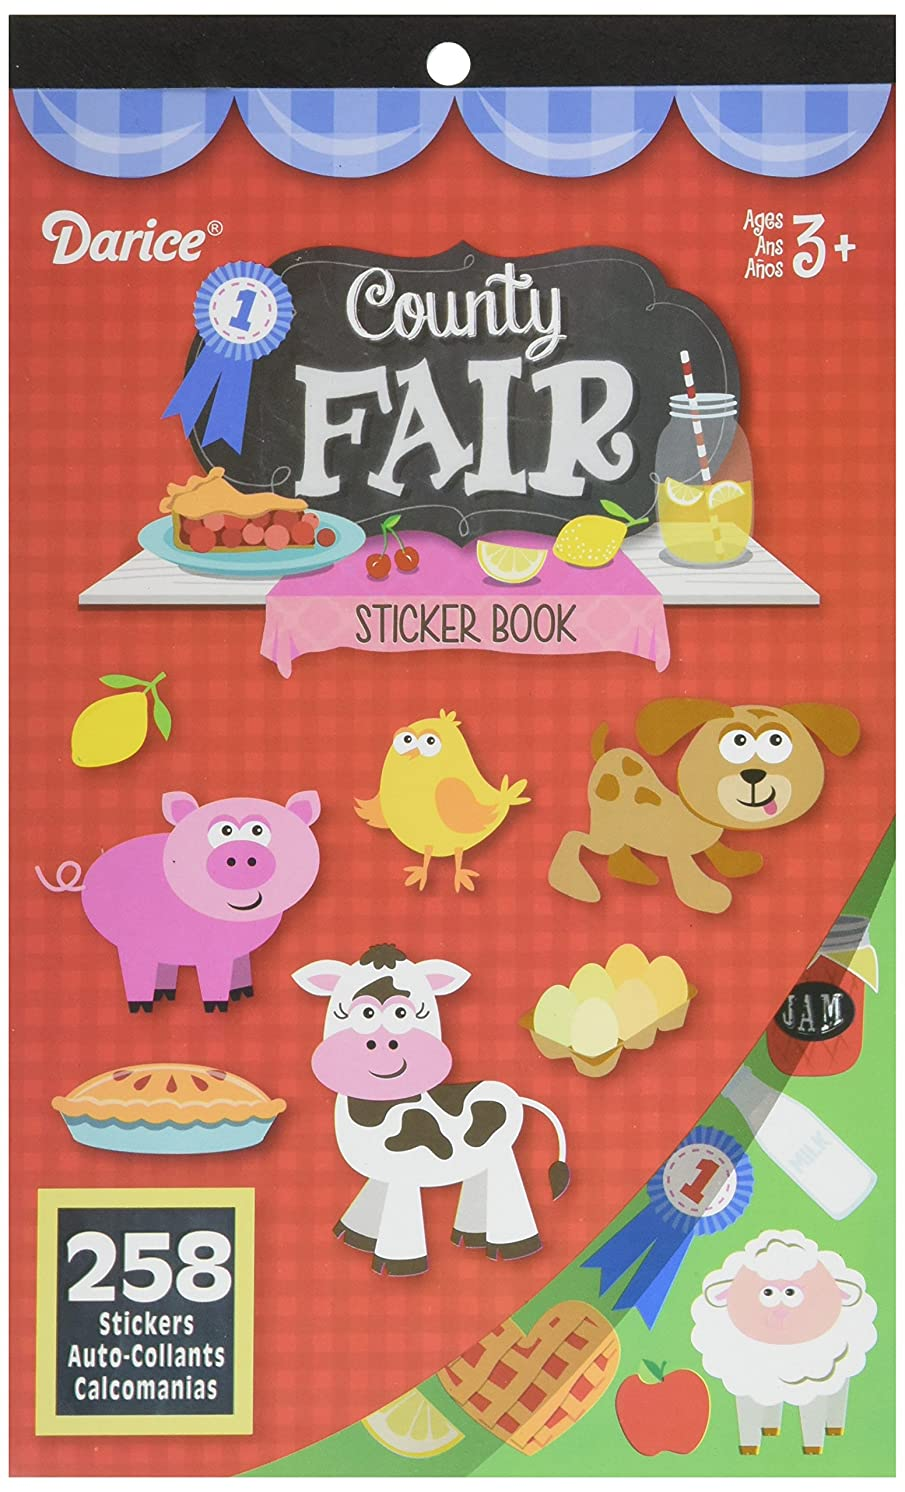 Darice, 258 Stickers, County Fair Sticker Book